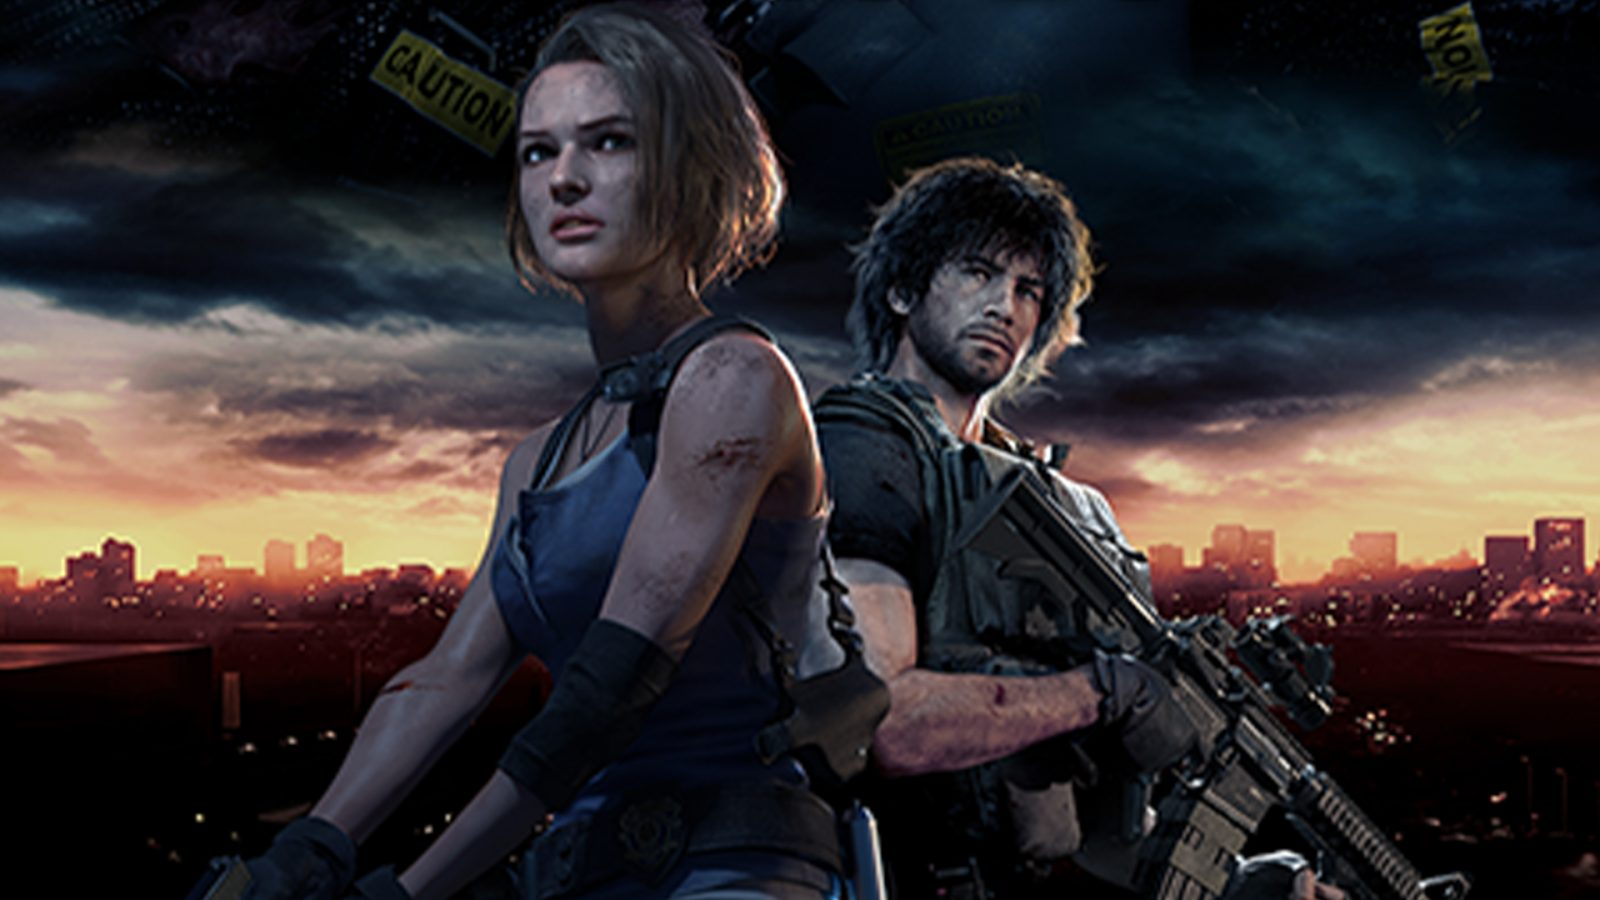 The Game Awards announcements will include ten new games – but no Resident Evil 3